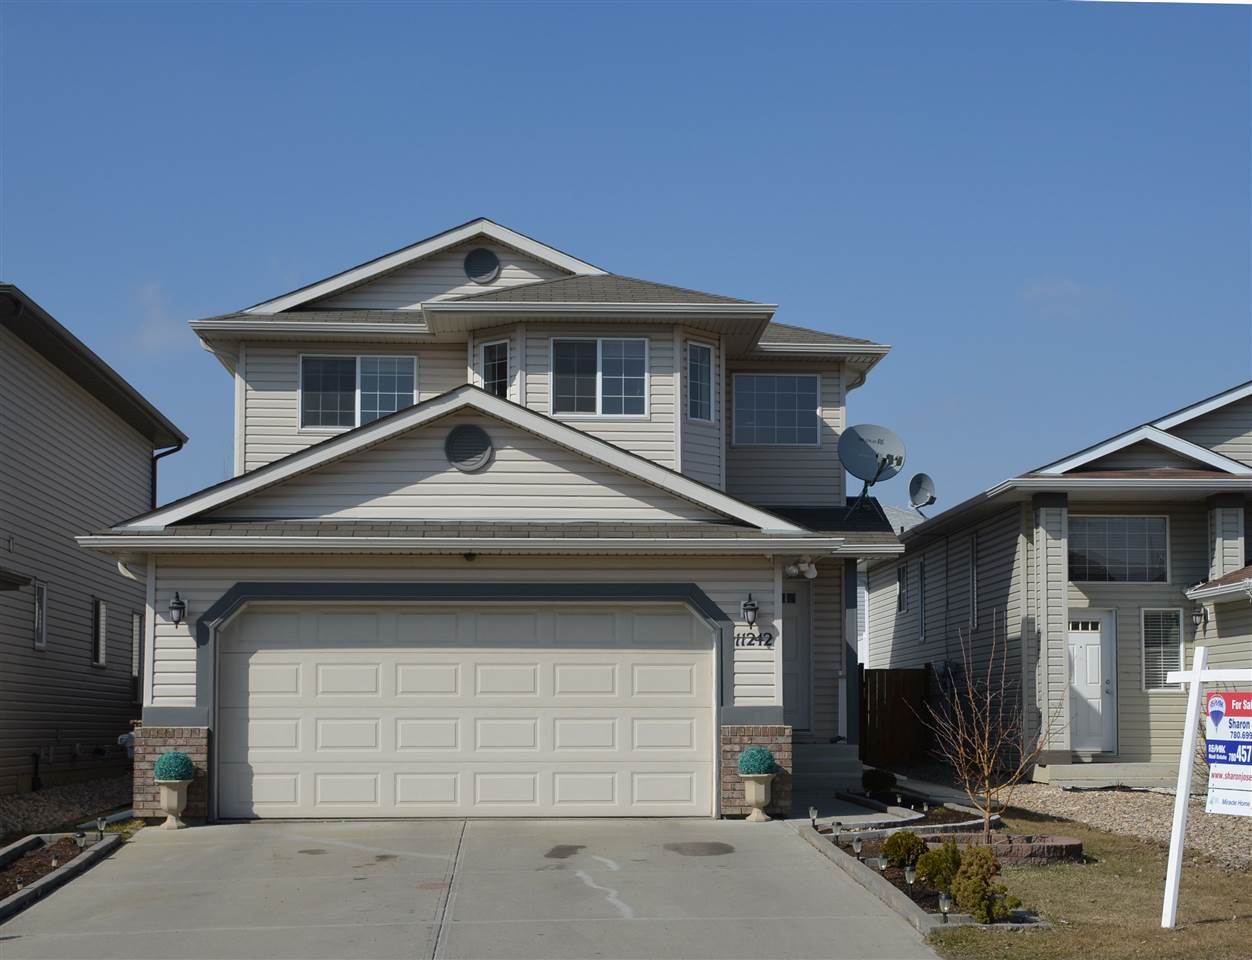 Main Photo: 11242 167A Avenue in Edmonton: Zone 27 House for sale : MLS(r) # E4051845